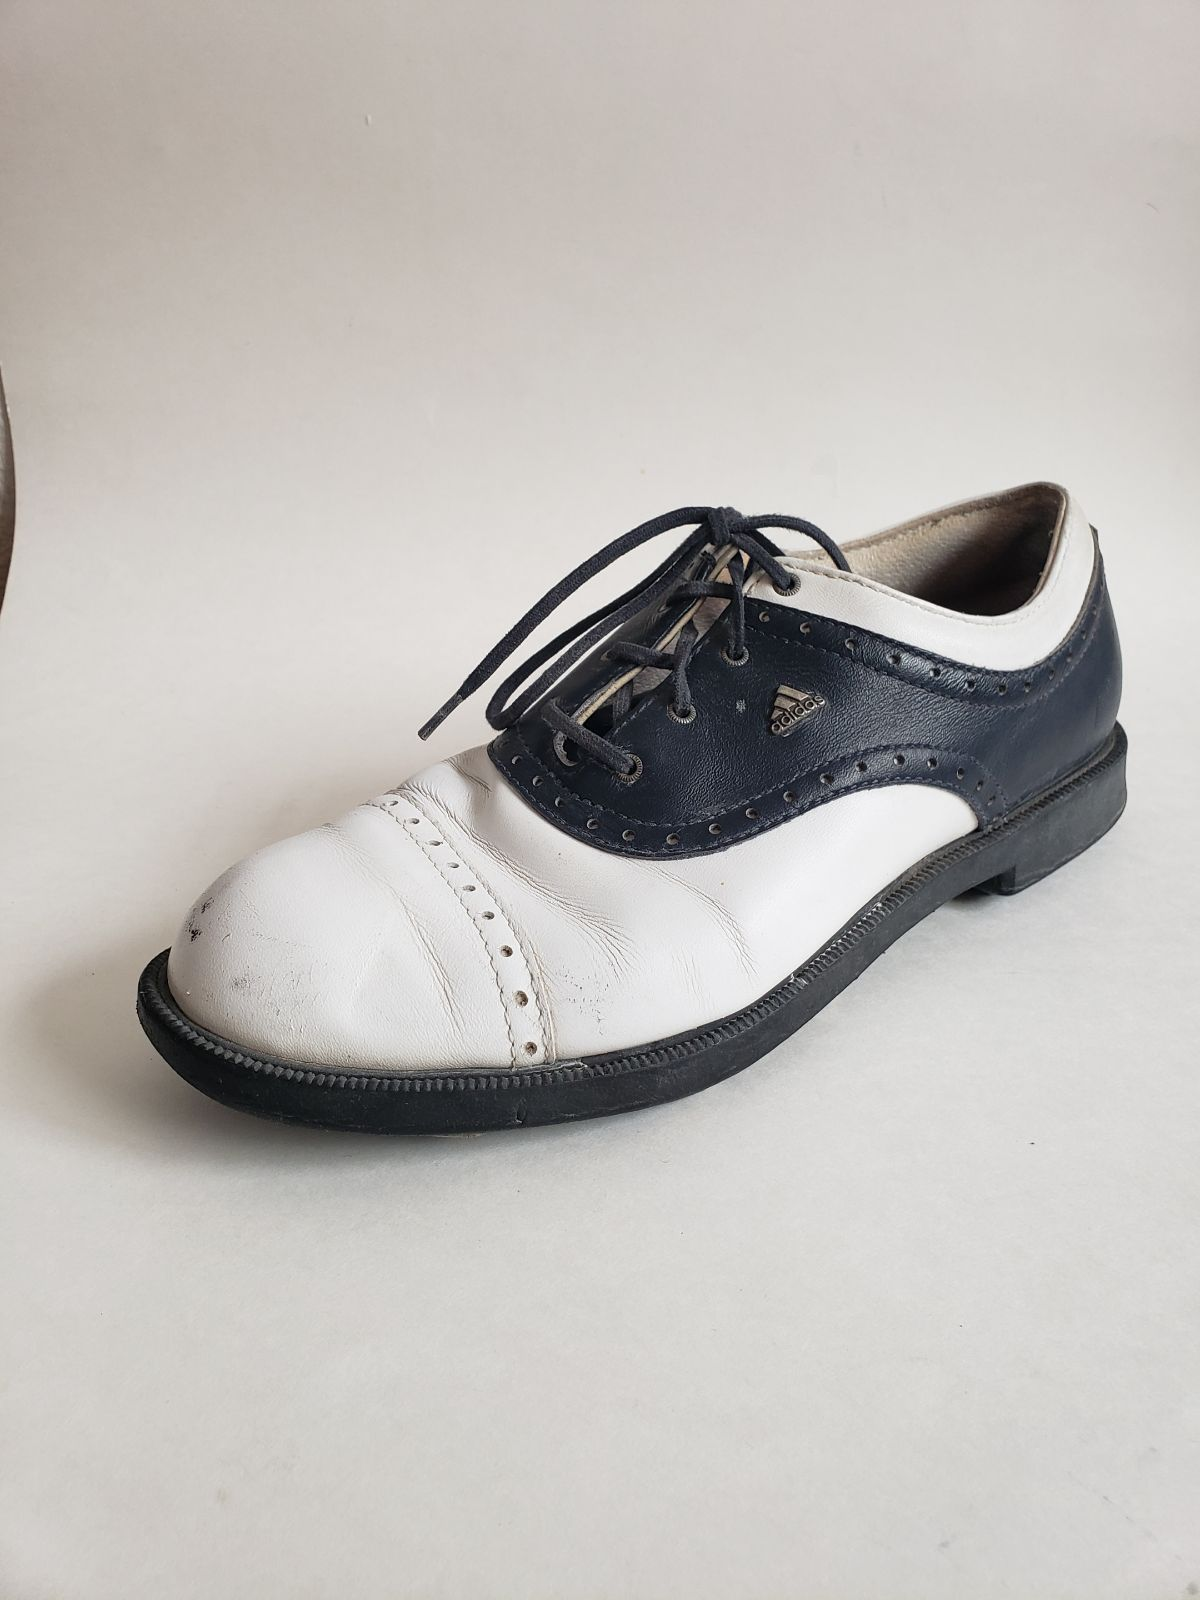 Adidas fitfoam golf leather shoes